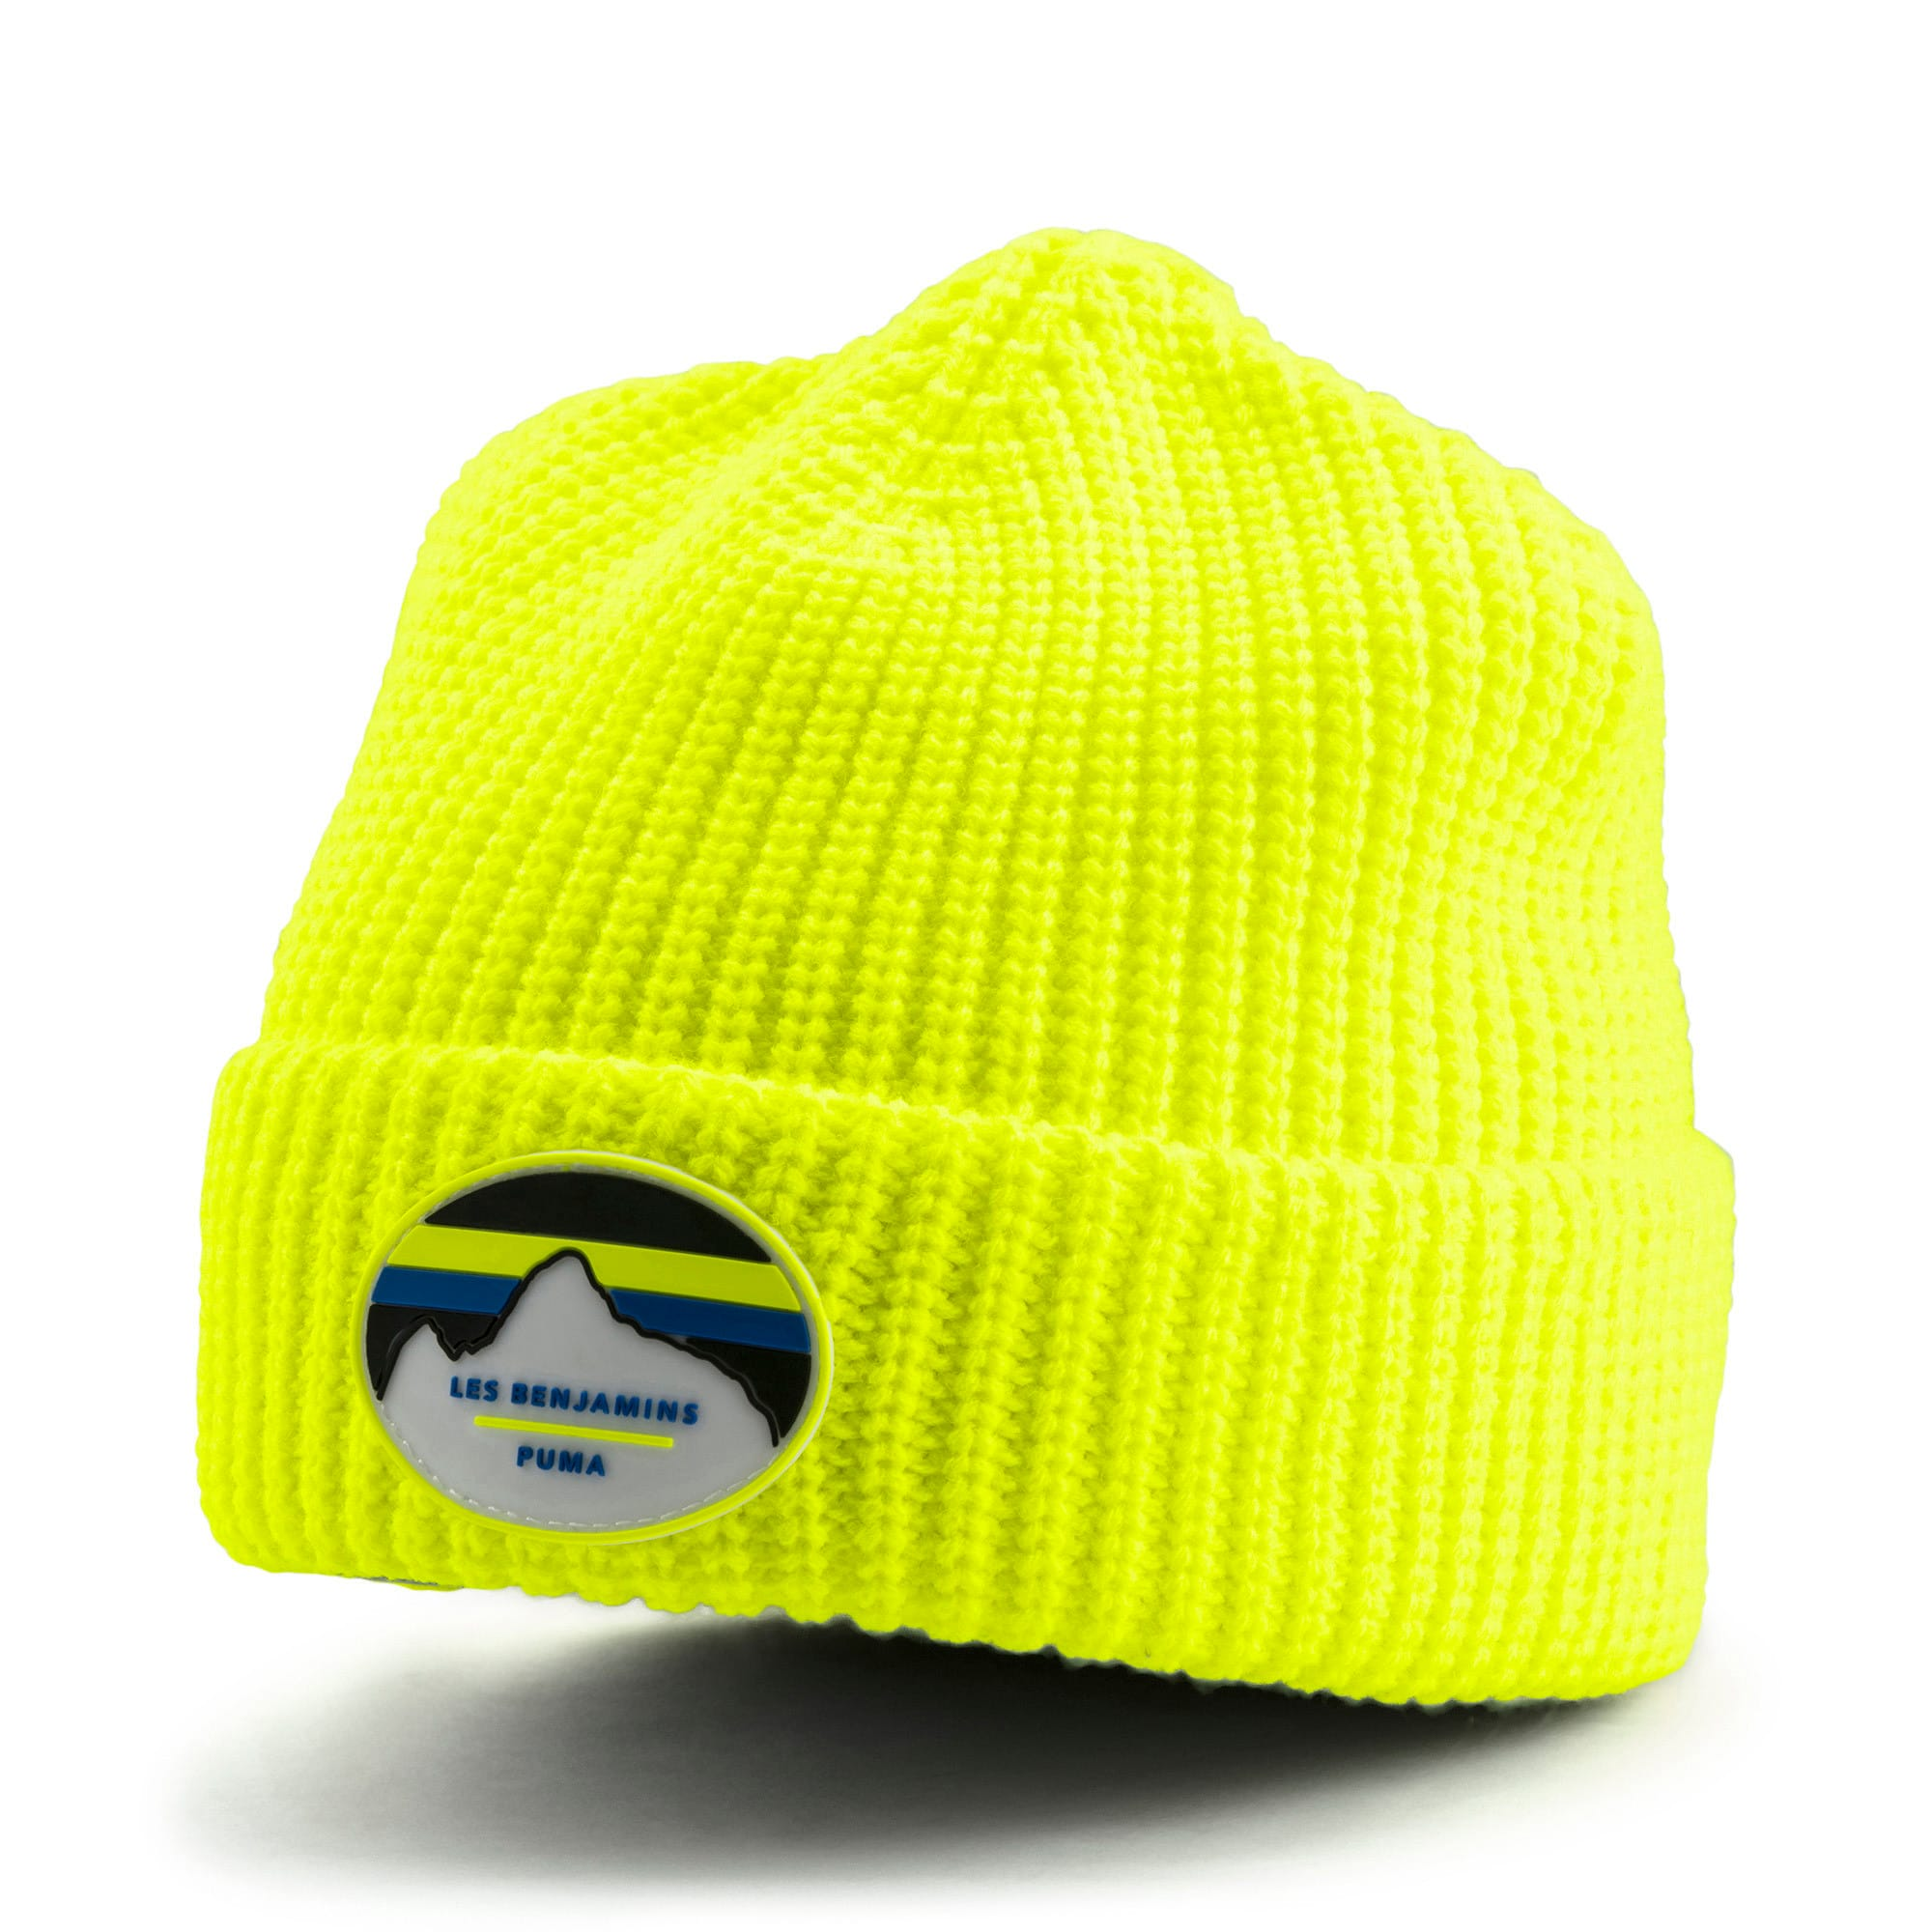 PUMA x LES BENJAMINS Beanie, Safety Yellow, large